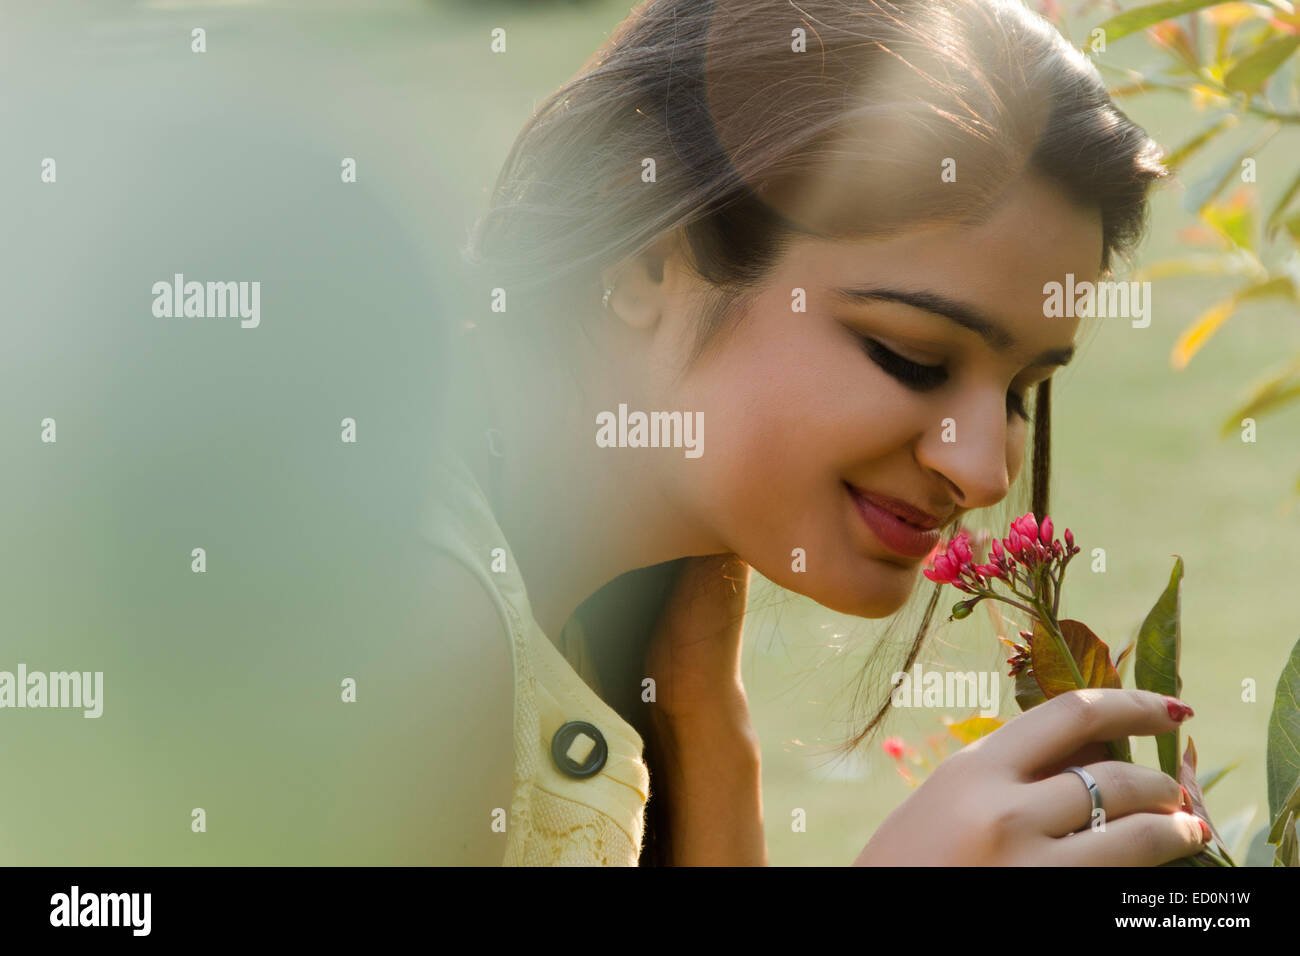 Indian Lady Garden Plant Life Stock Photos & Indian Lady Garden ...